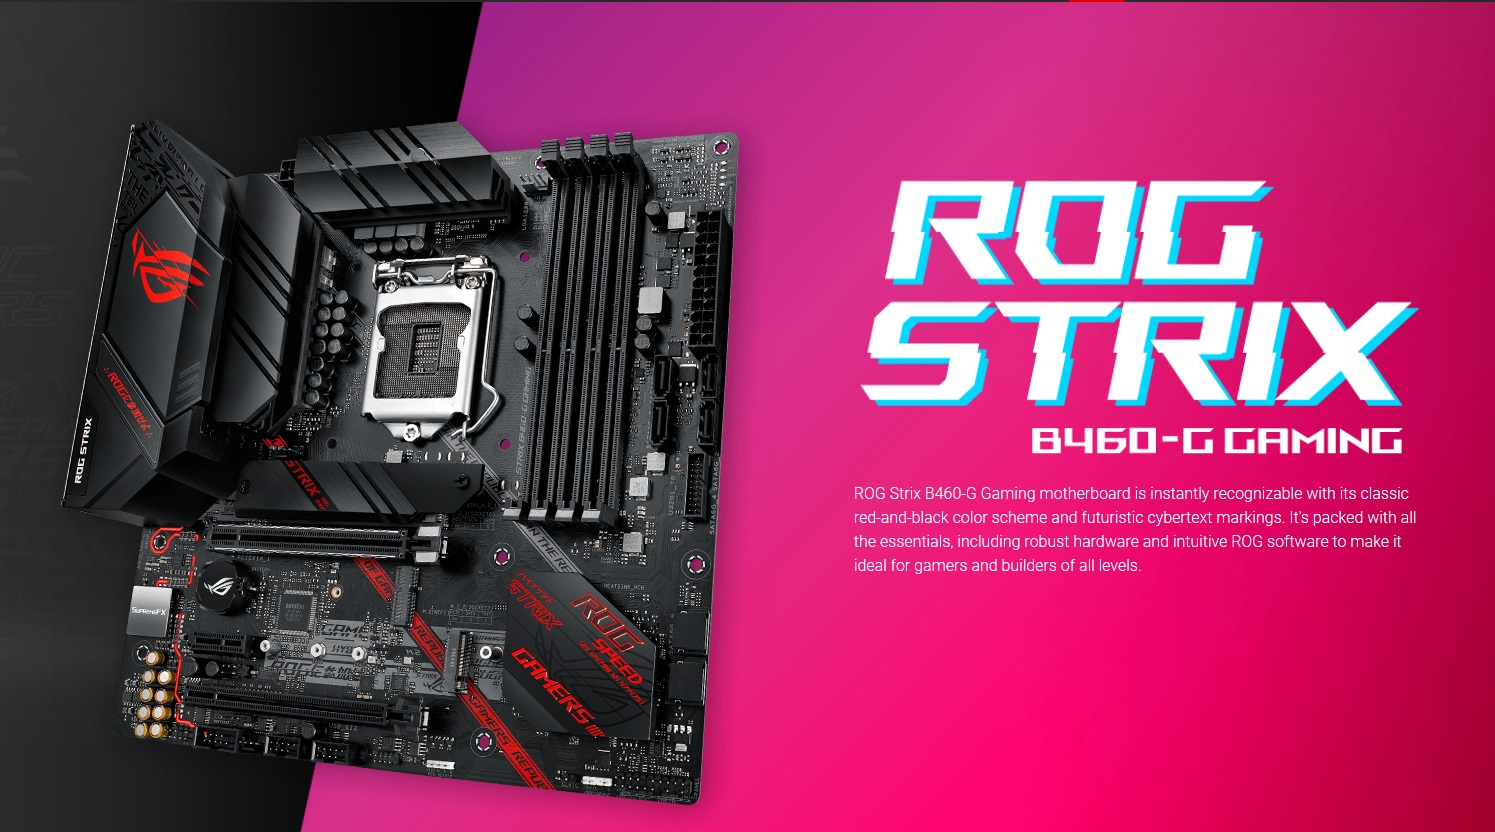 Asus ROG Strix B460G Gaming Mainboard